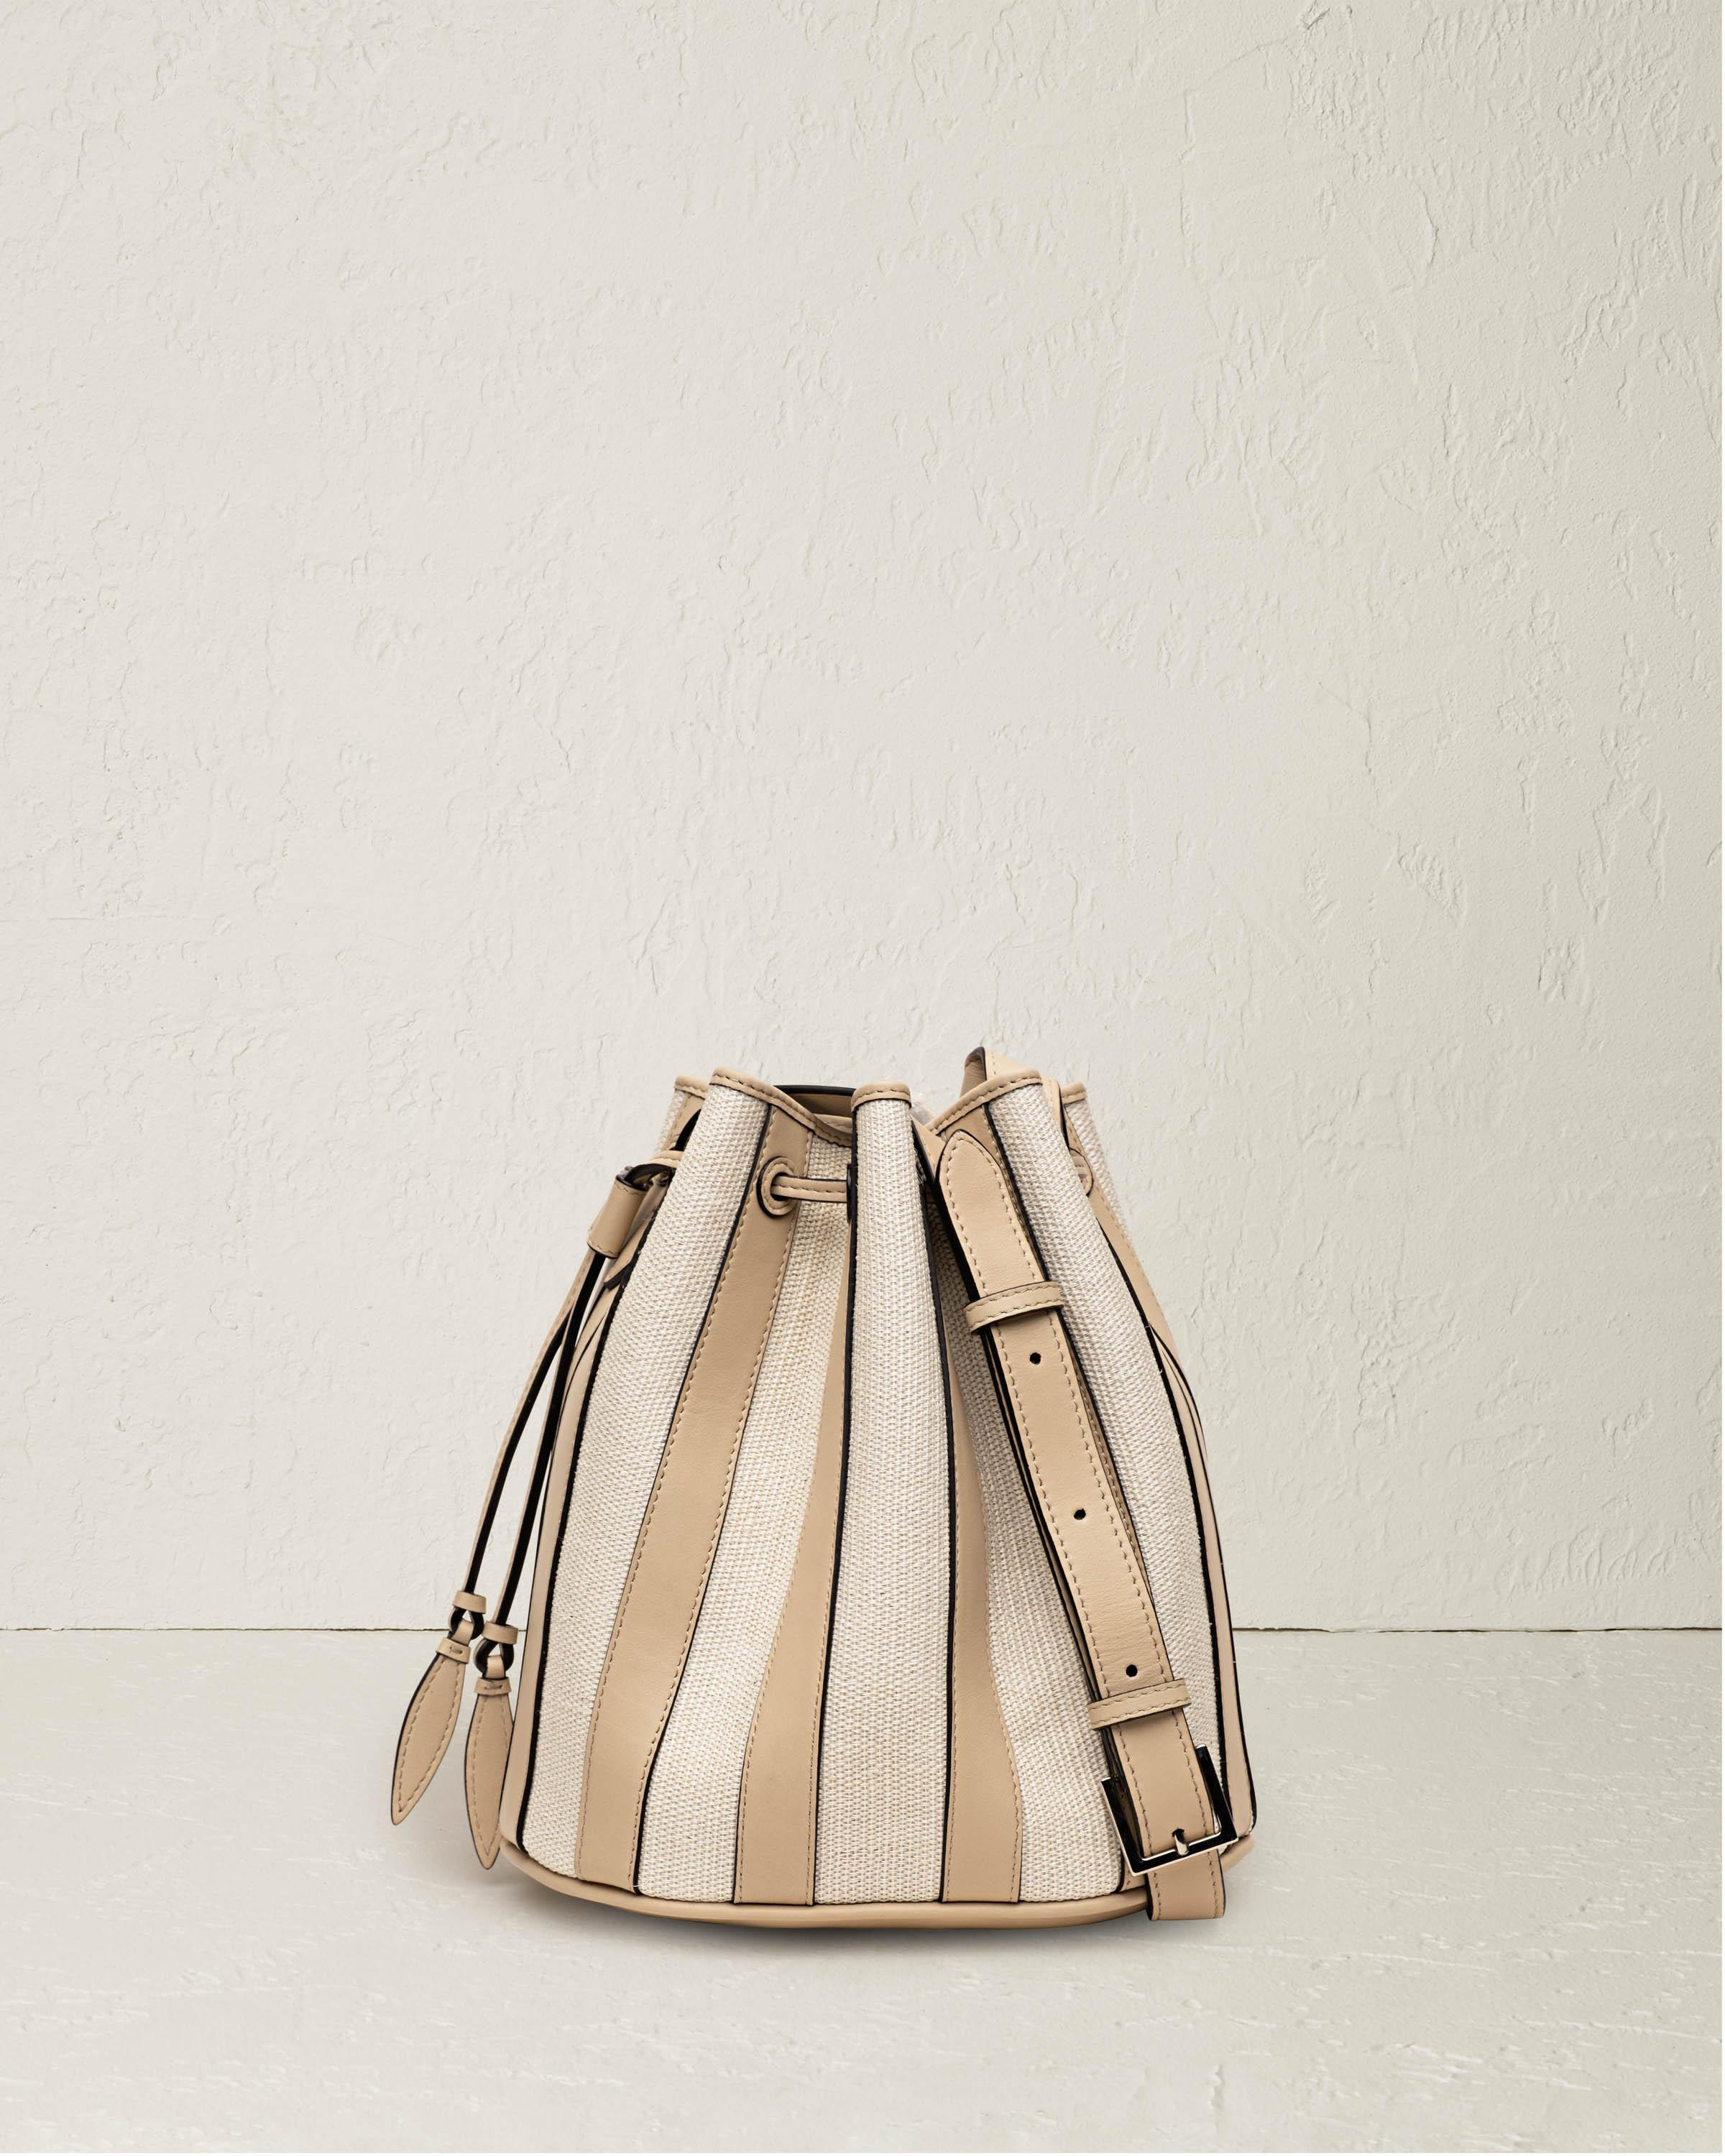 The Large Drawstring in Nappa Vertical Stripes and Fique